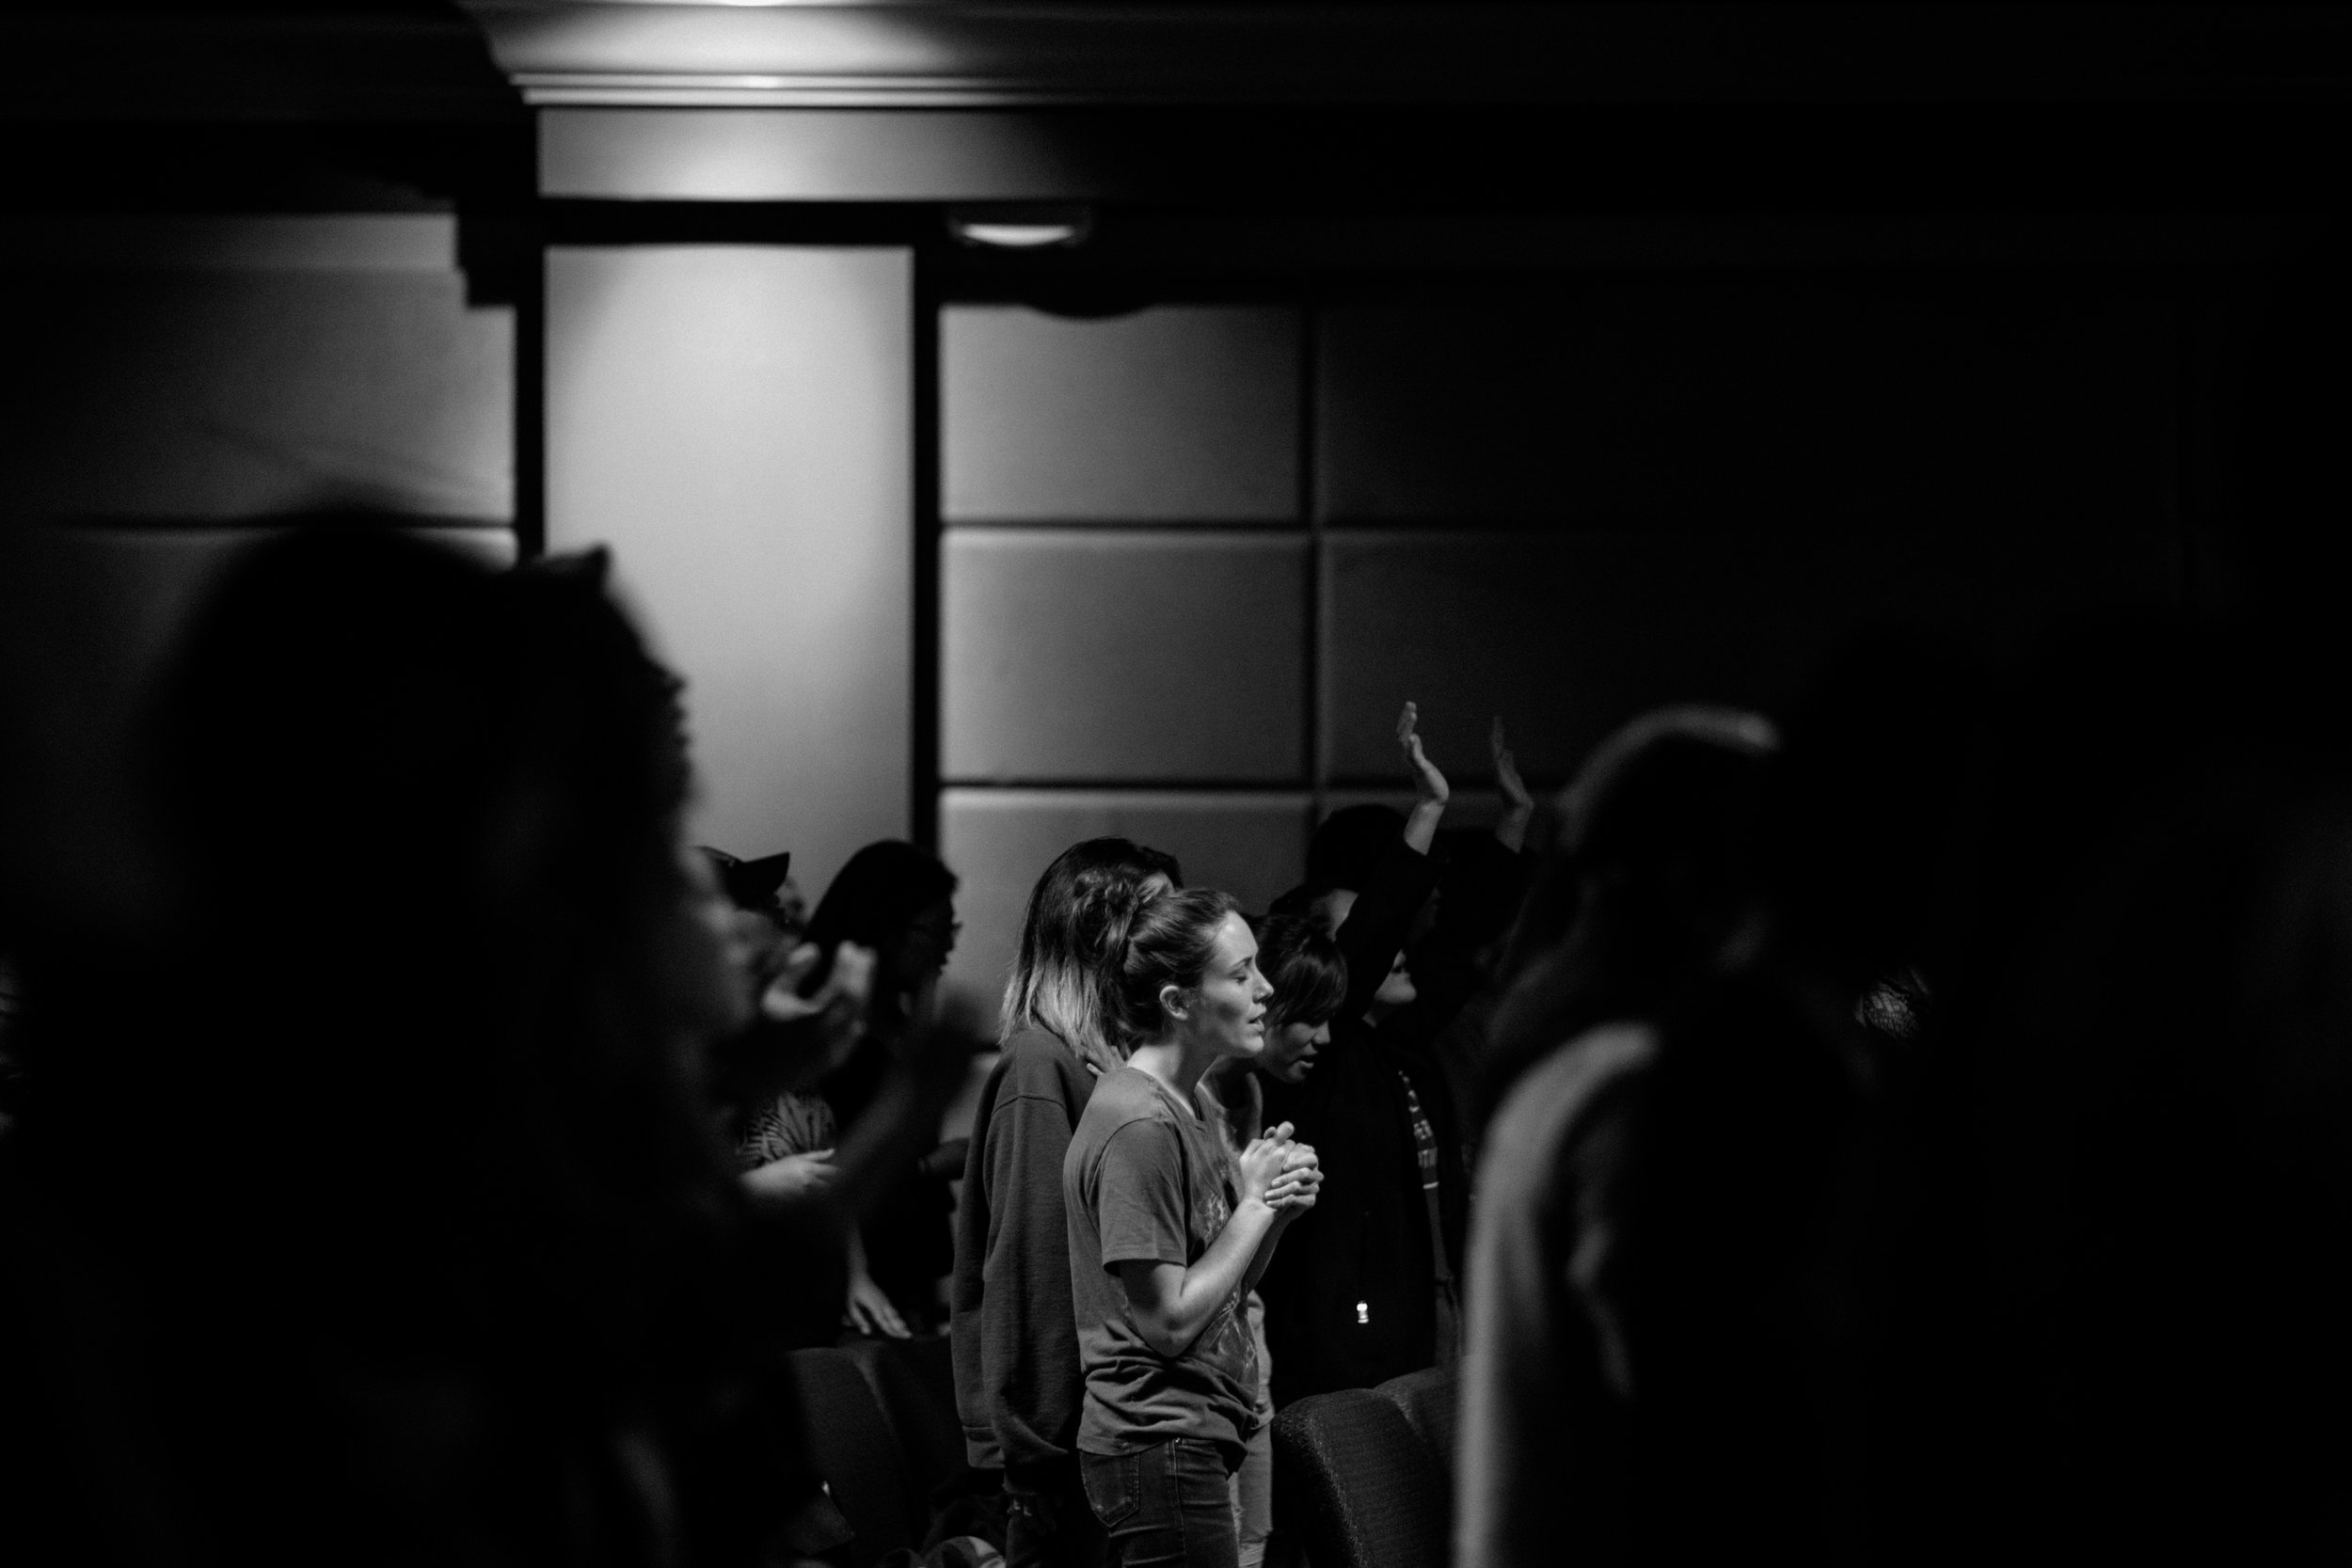 presence - We value people having a deep and personal relationship with God. We believe people will meet with God through His personal presence. Therefore, we will teach and preach on having a deep, intimate, personal relationship with God.